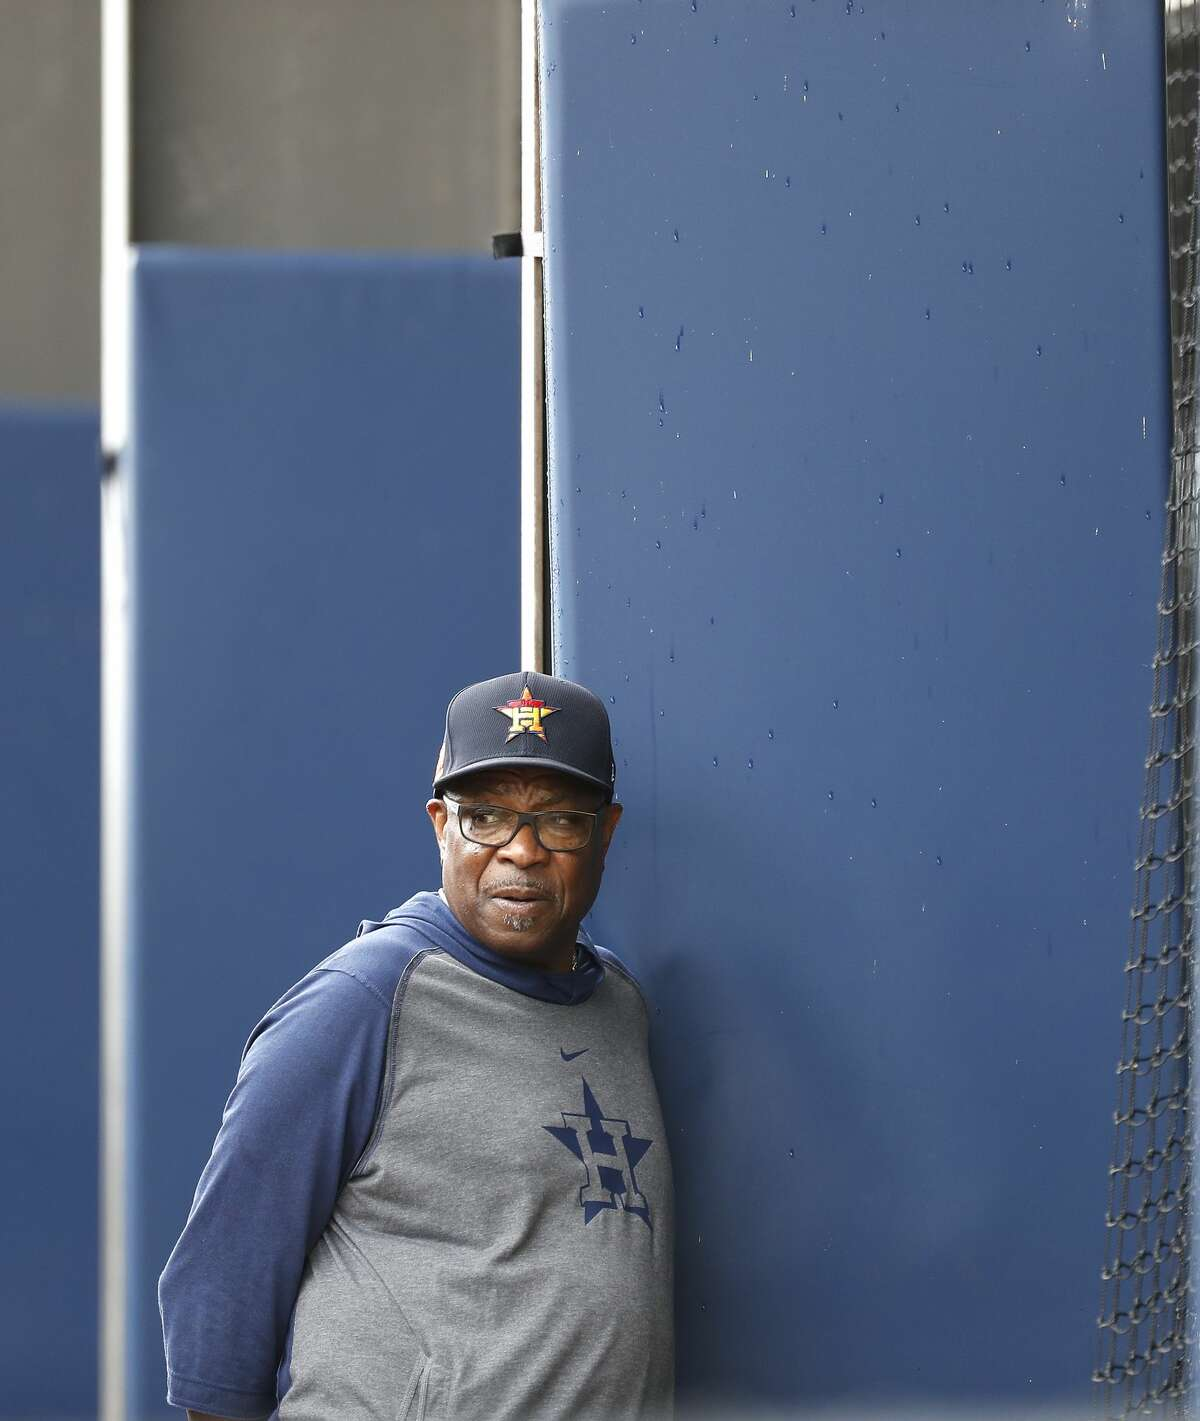 Houston Astros manager Dusty Baker Jr. surveys players working out in the batting cages due to rain showers in the area during the Houston Astros spring training workouts at the Fitteam Ballpark of The Palm Beaches, in West Palm Beach , Saturday, Feb. 15, 2020.